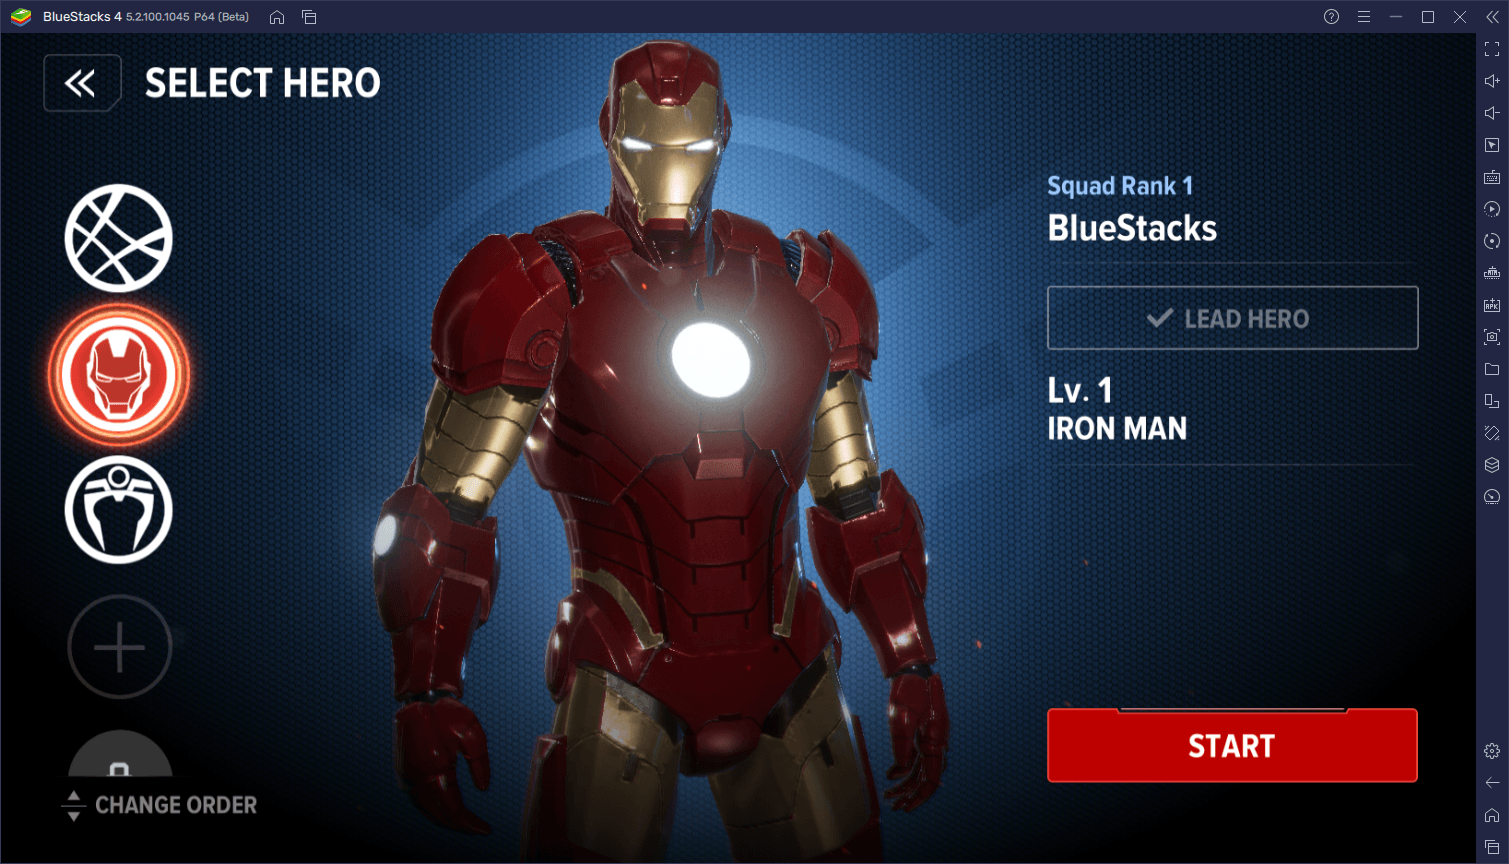 MARVEL Future Revolution – Guide With the Best Tips and Tricks